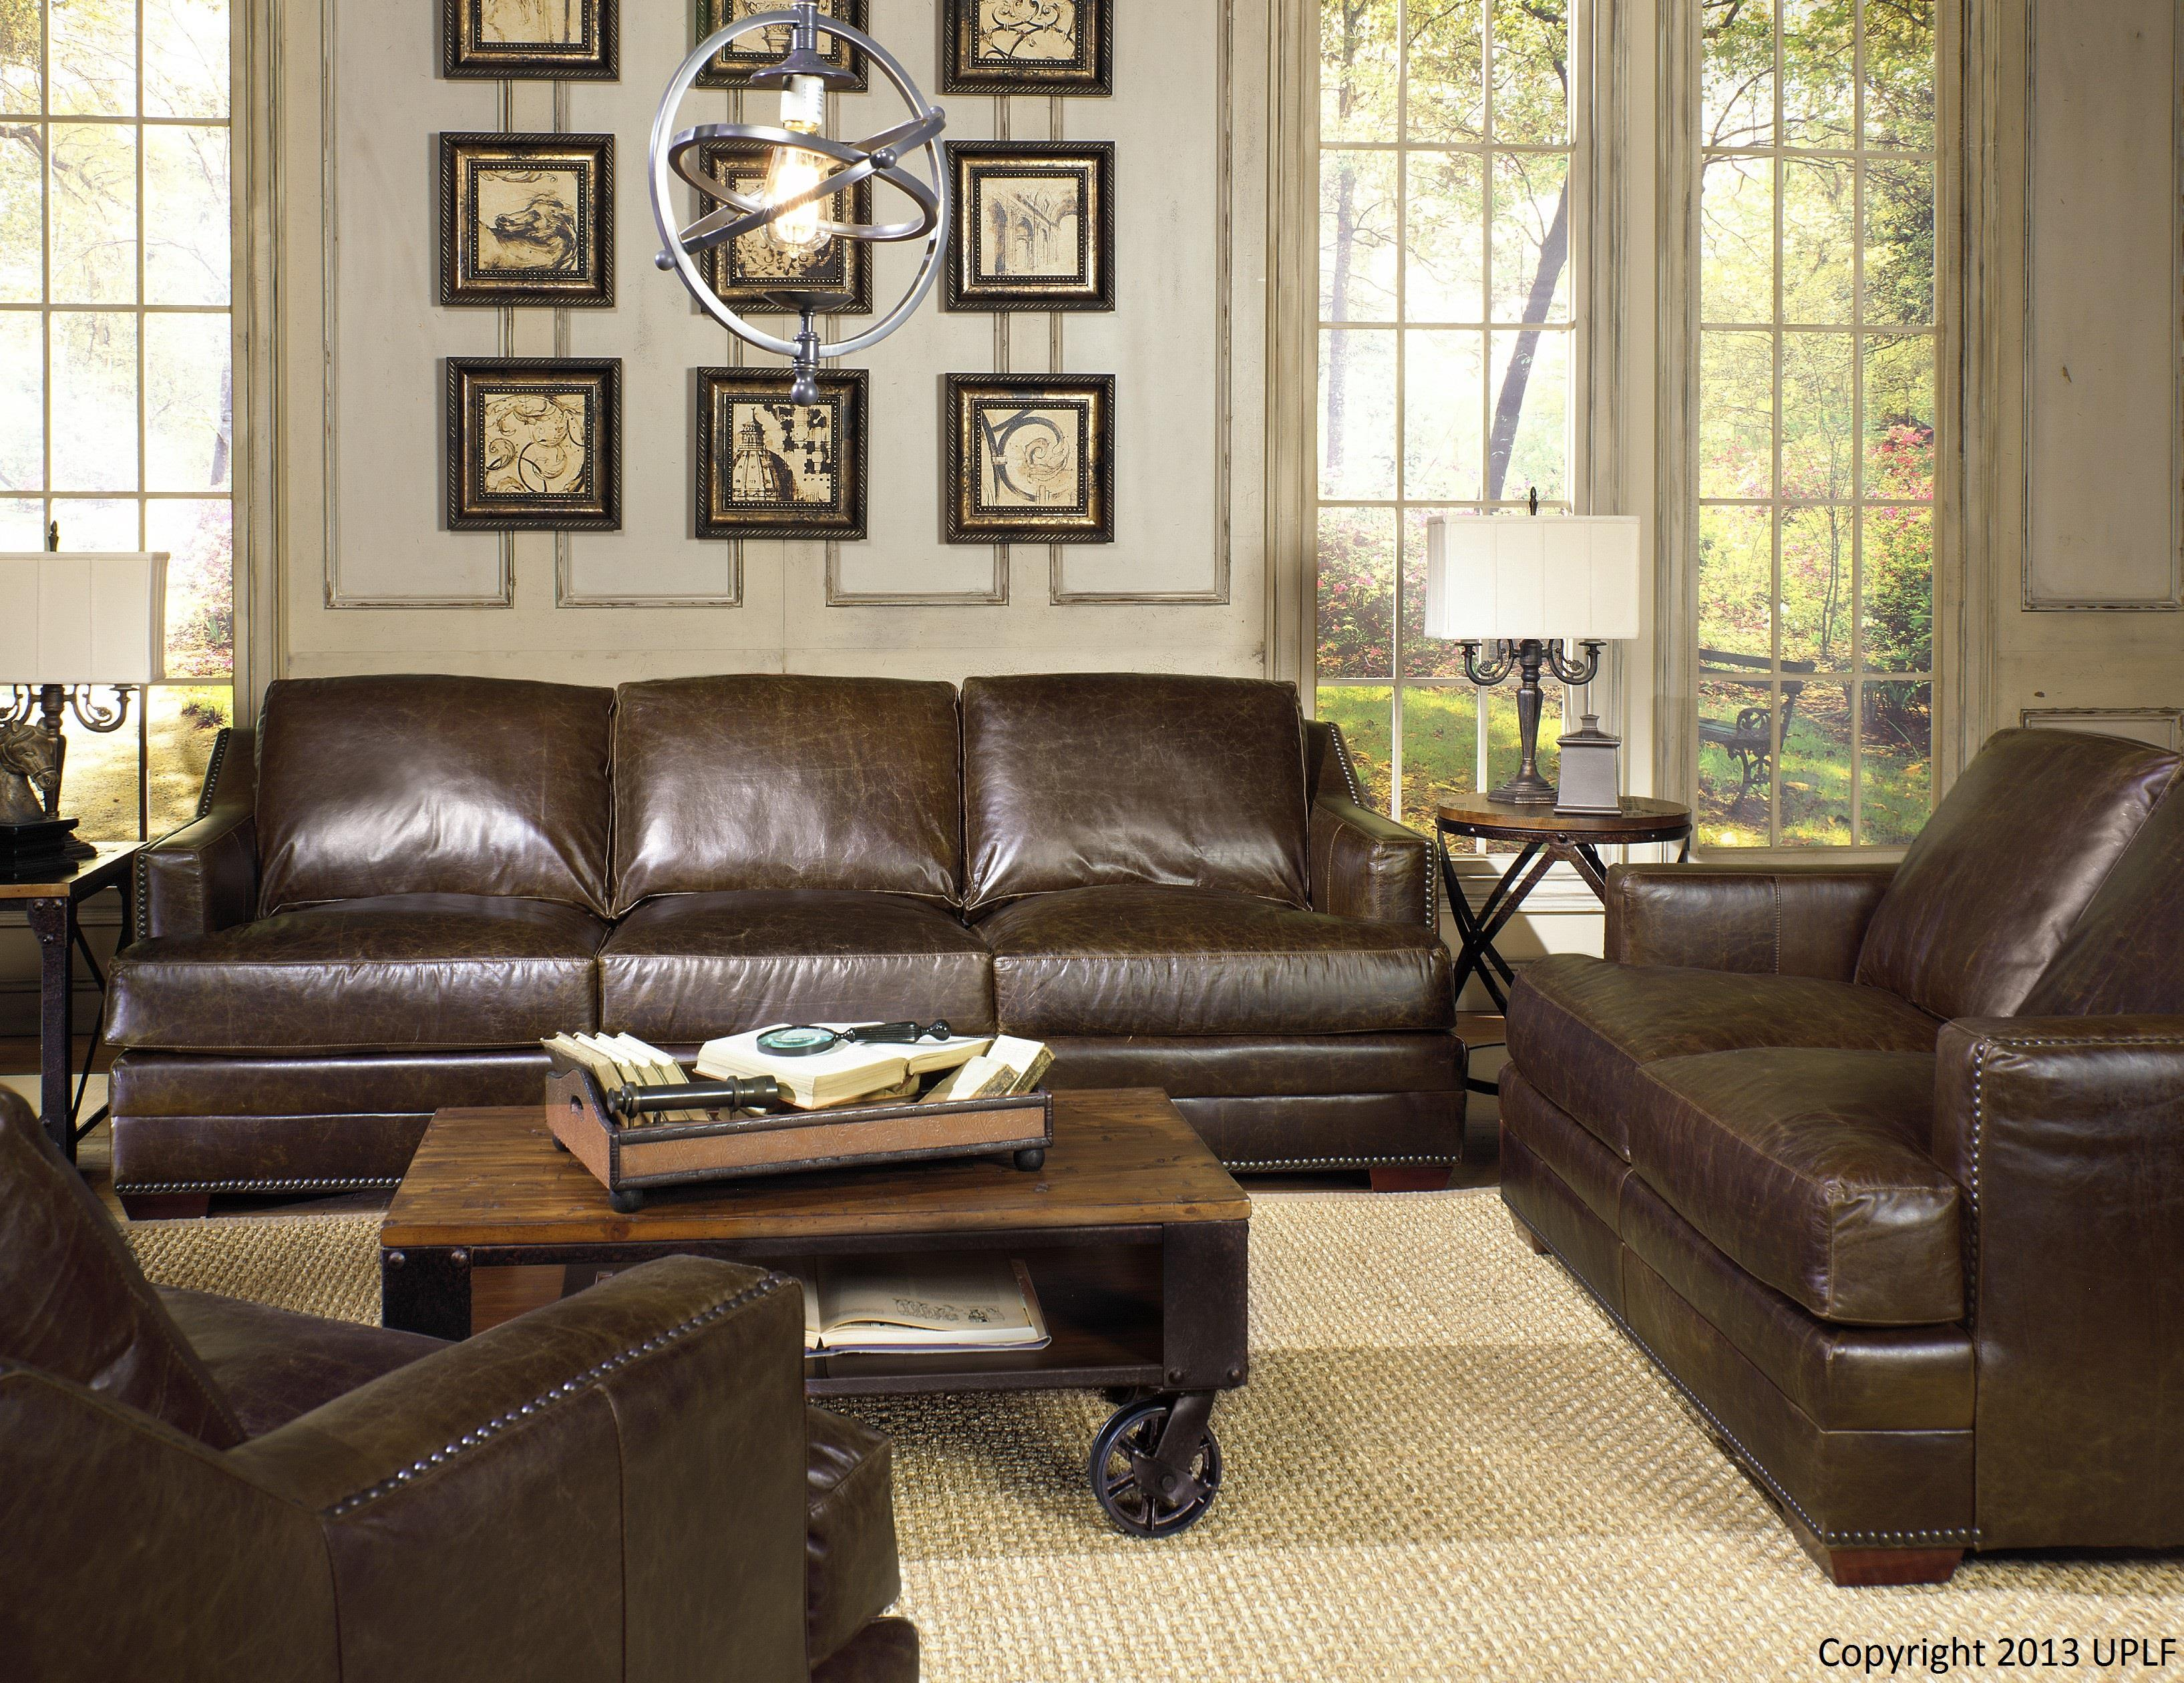 USA Premium Leather 9355 Sectional Sofa in 100% Leather Upholstery